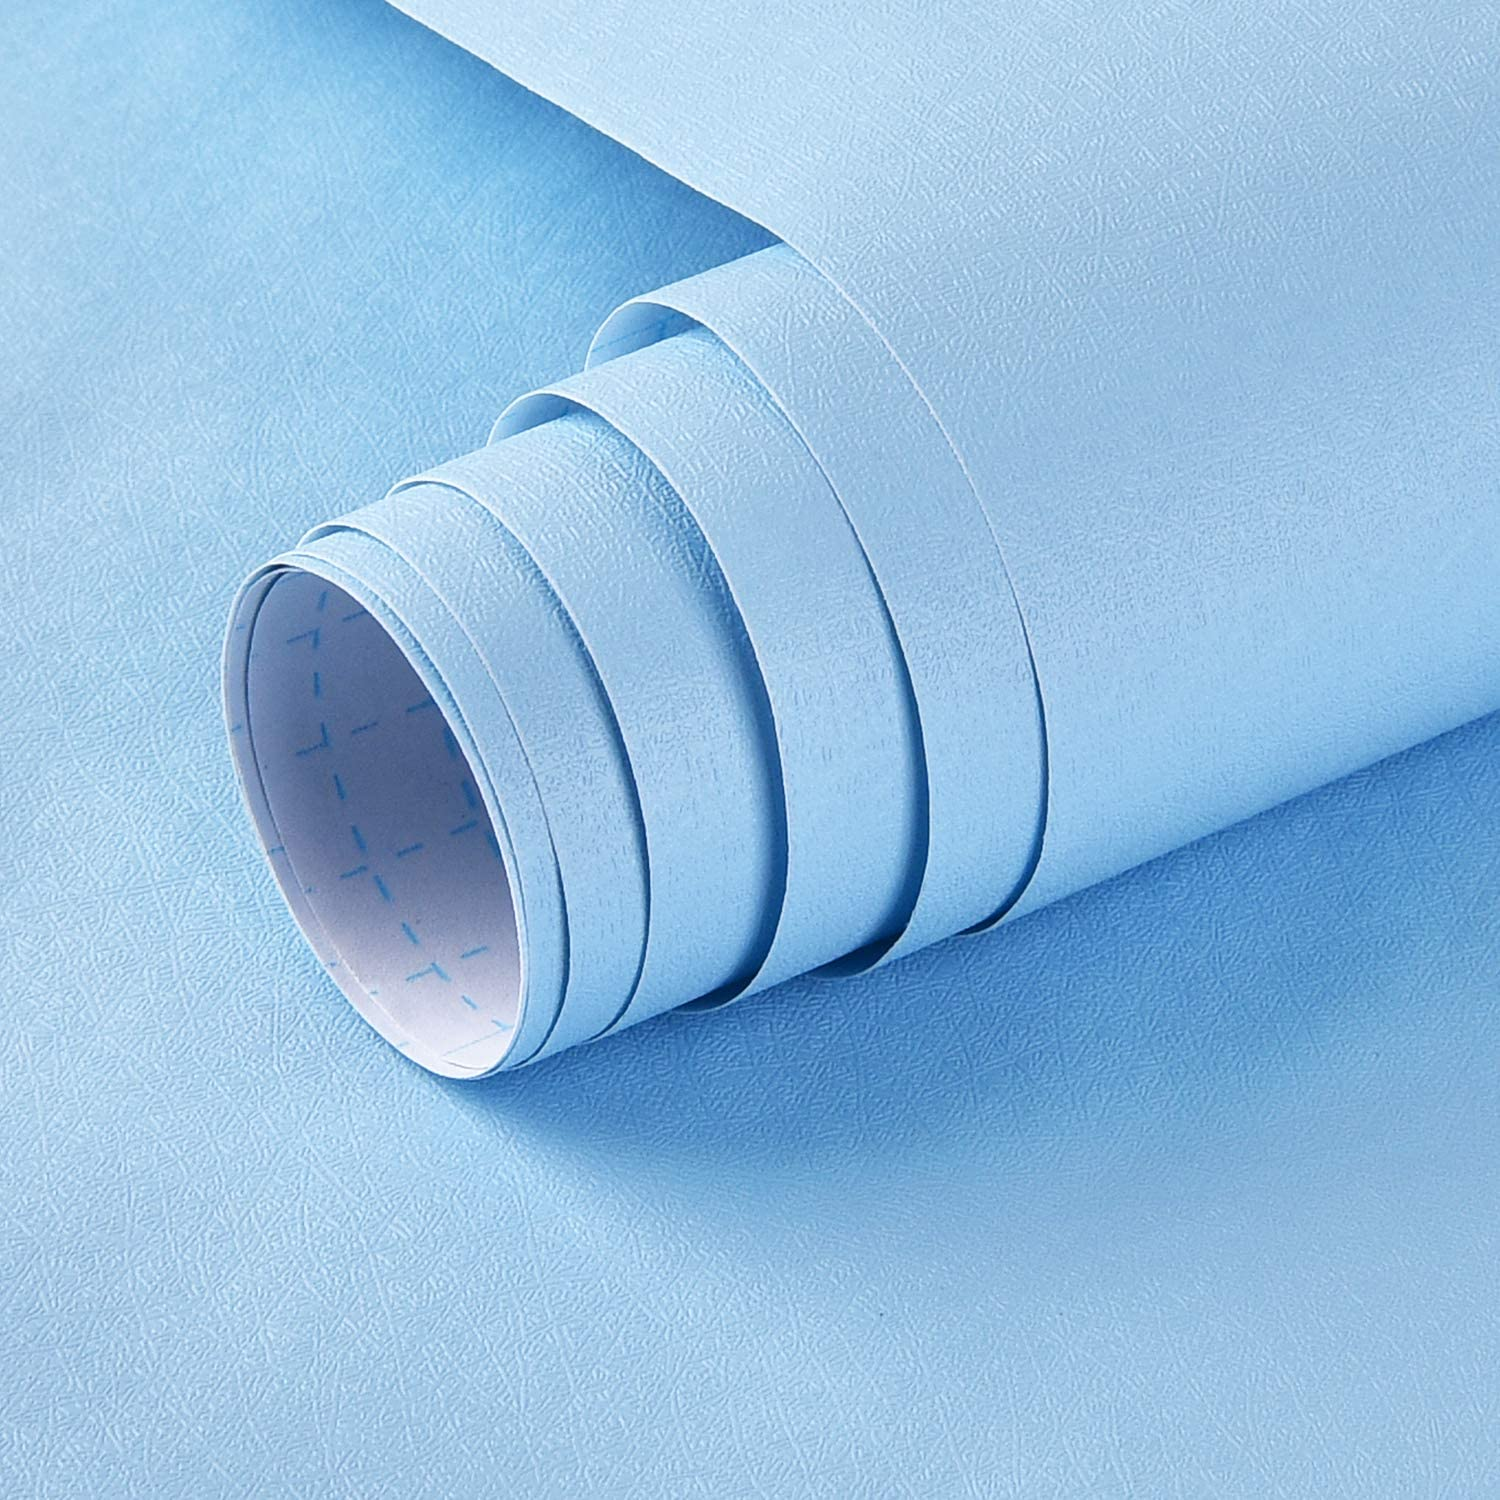 Tulsa Mall Blue Wallpaper Max 72% OFF 17.71In×118In Contact Paper and Peel